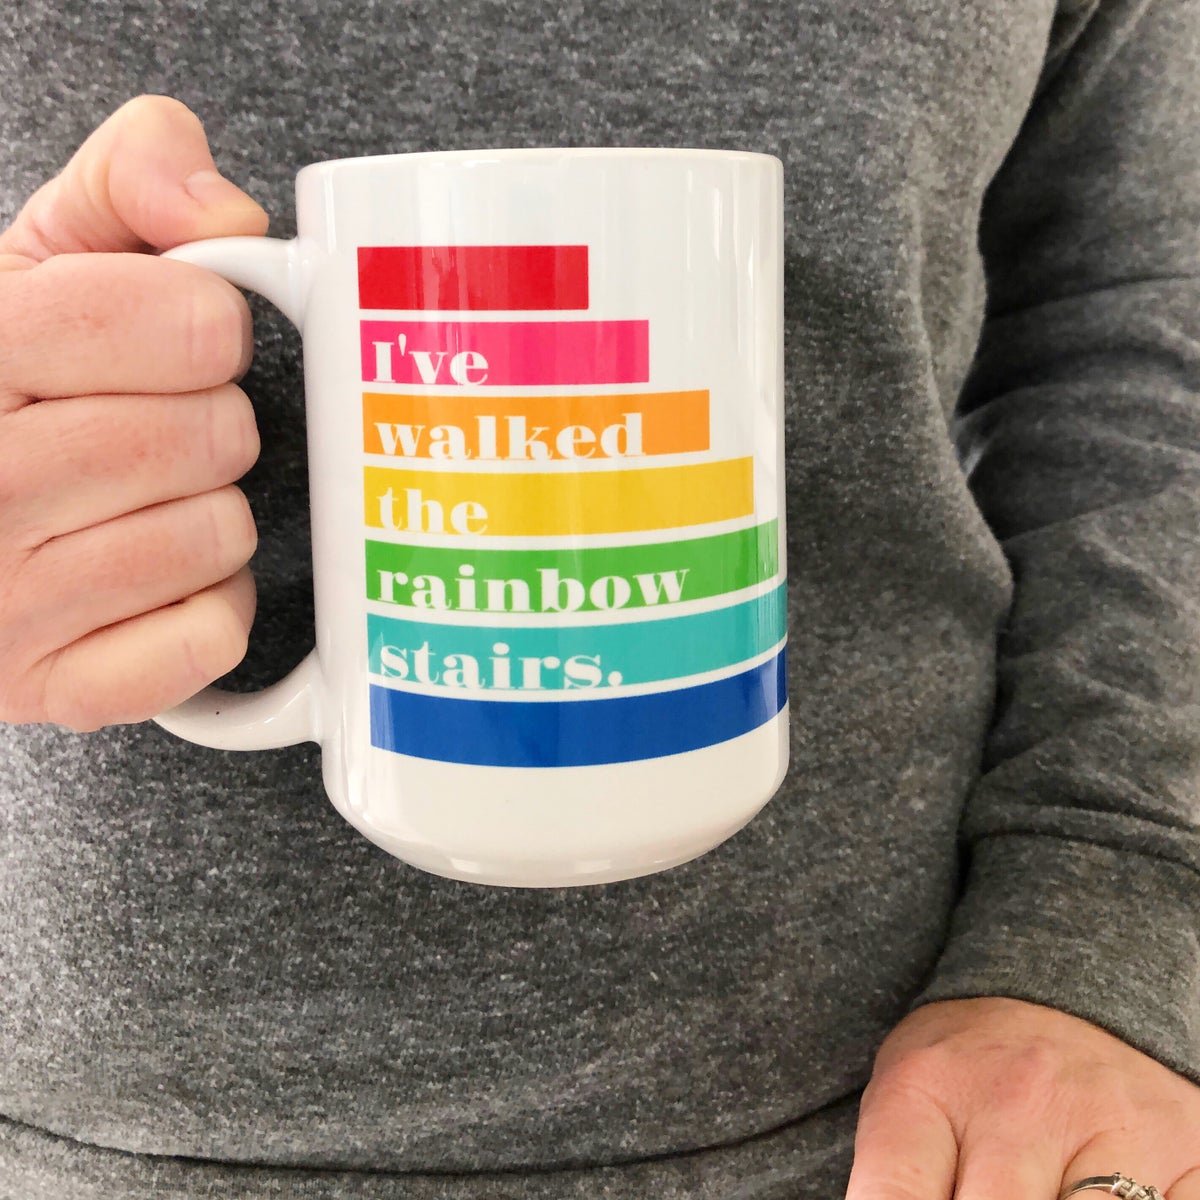 Image of I've walked the rainbow stairs Mug